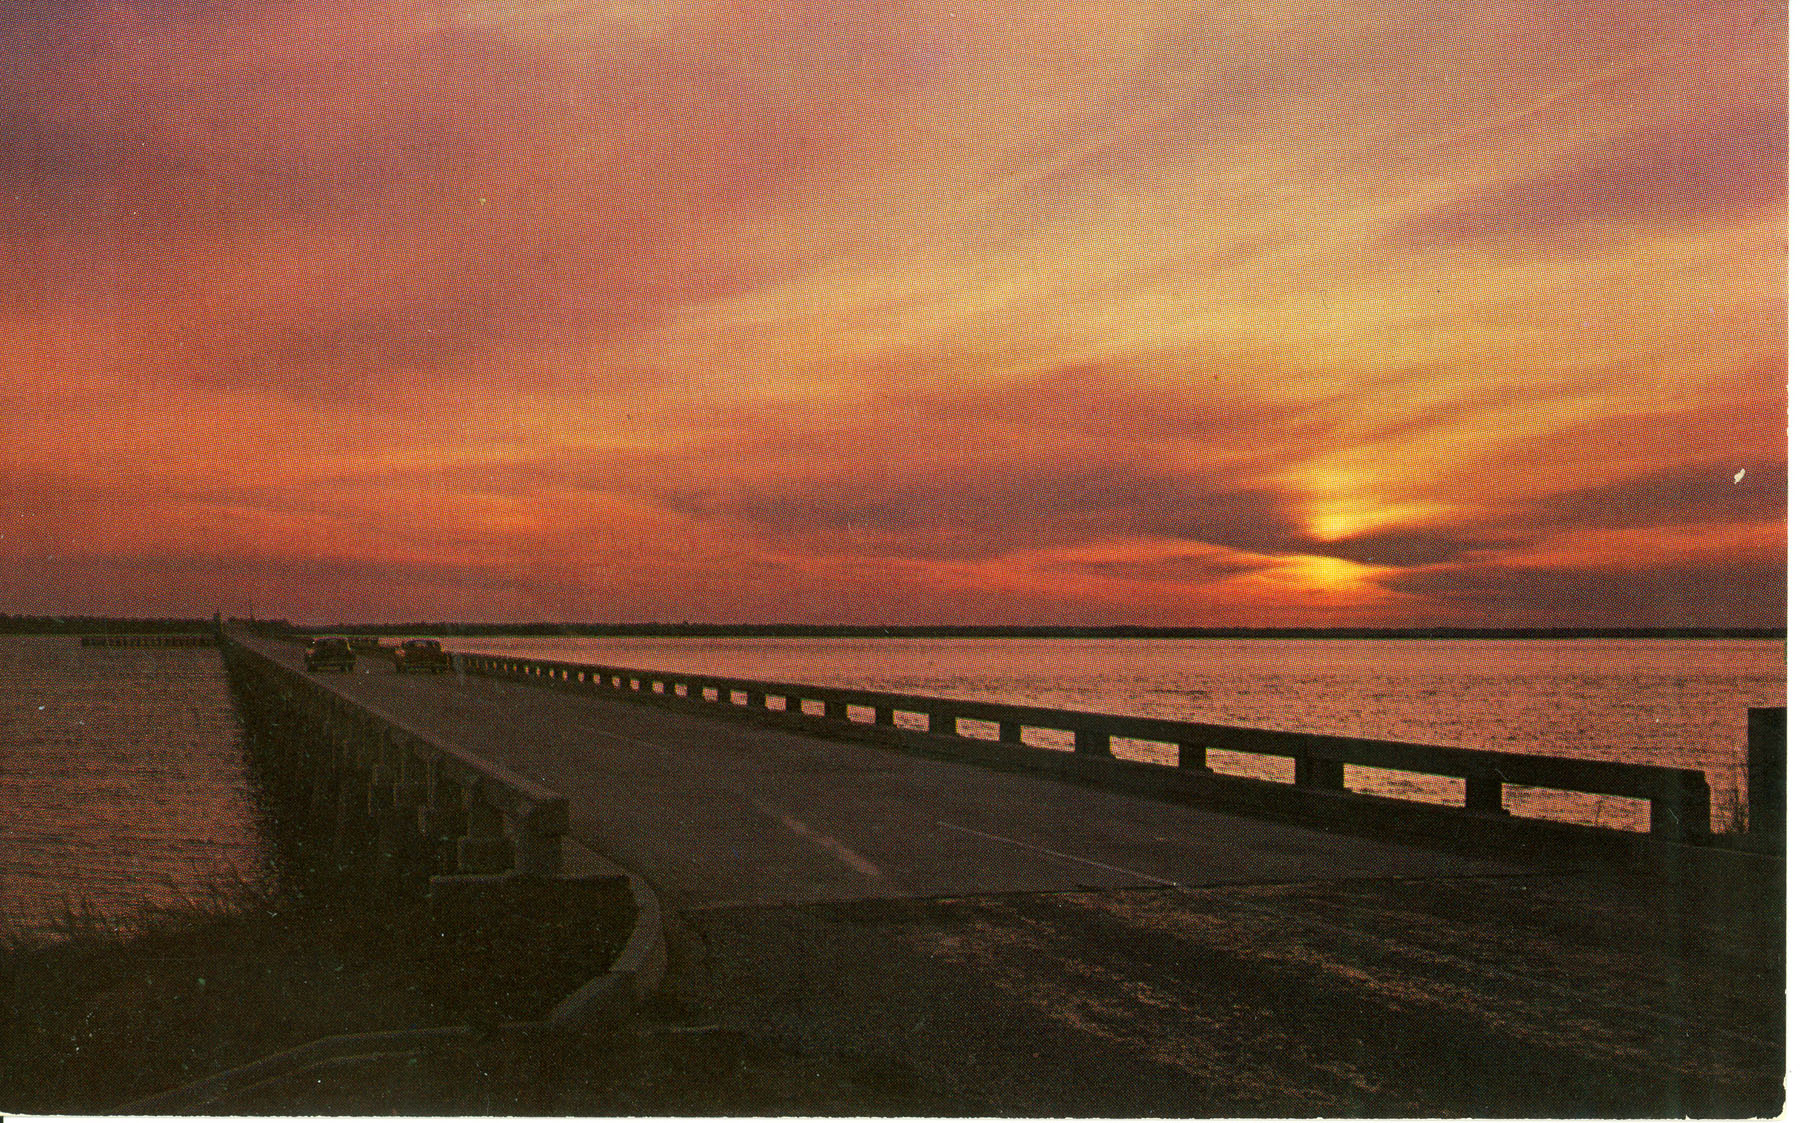 Sunset on the Broad River Beaufort County, South Carolina